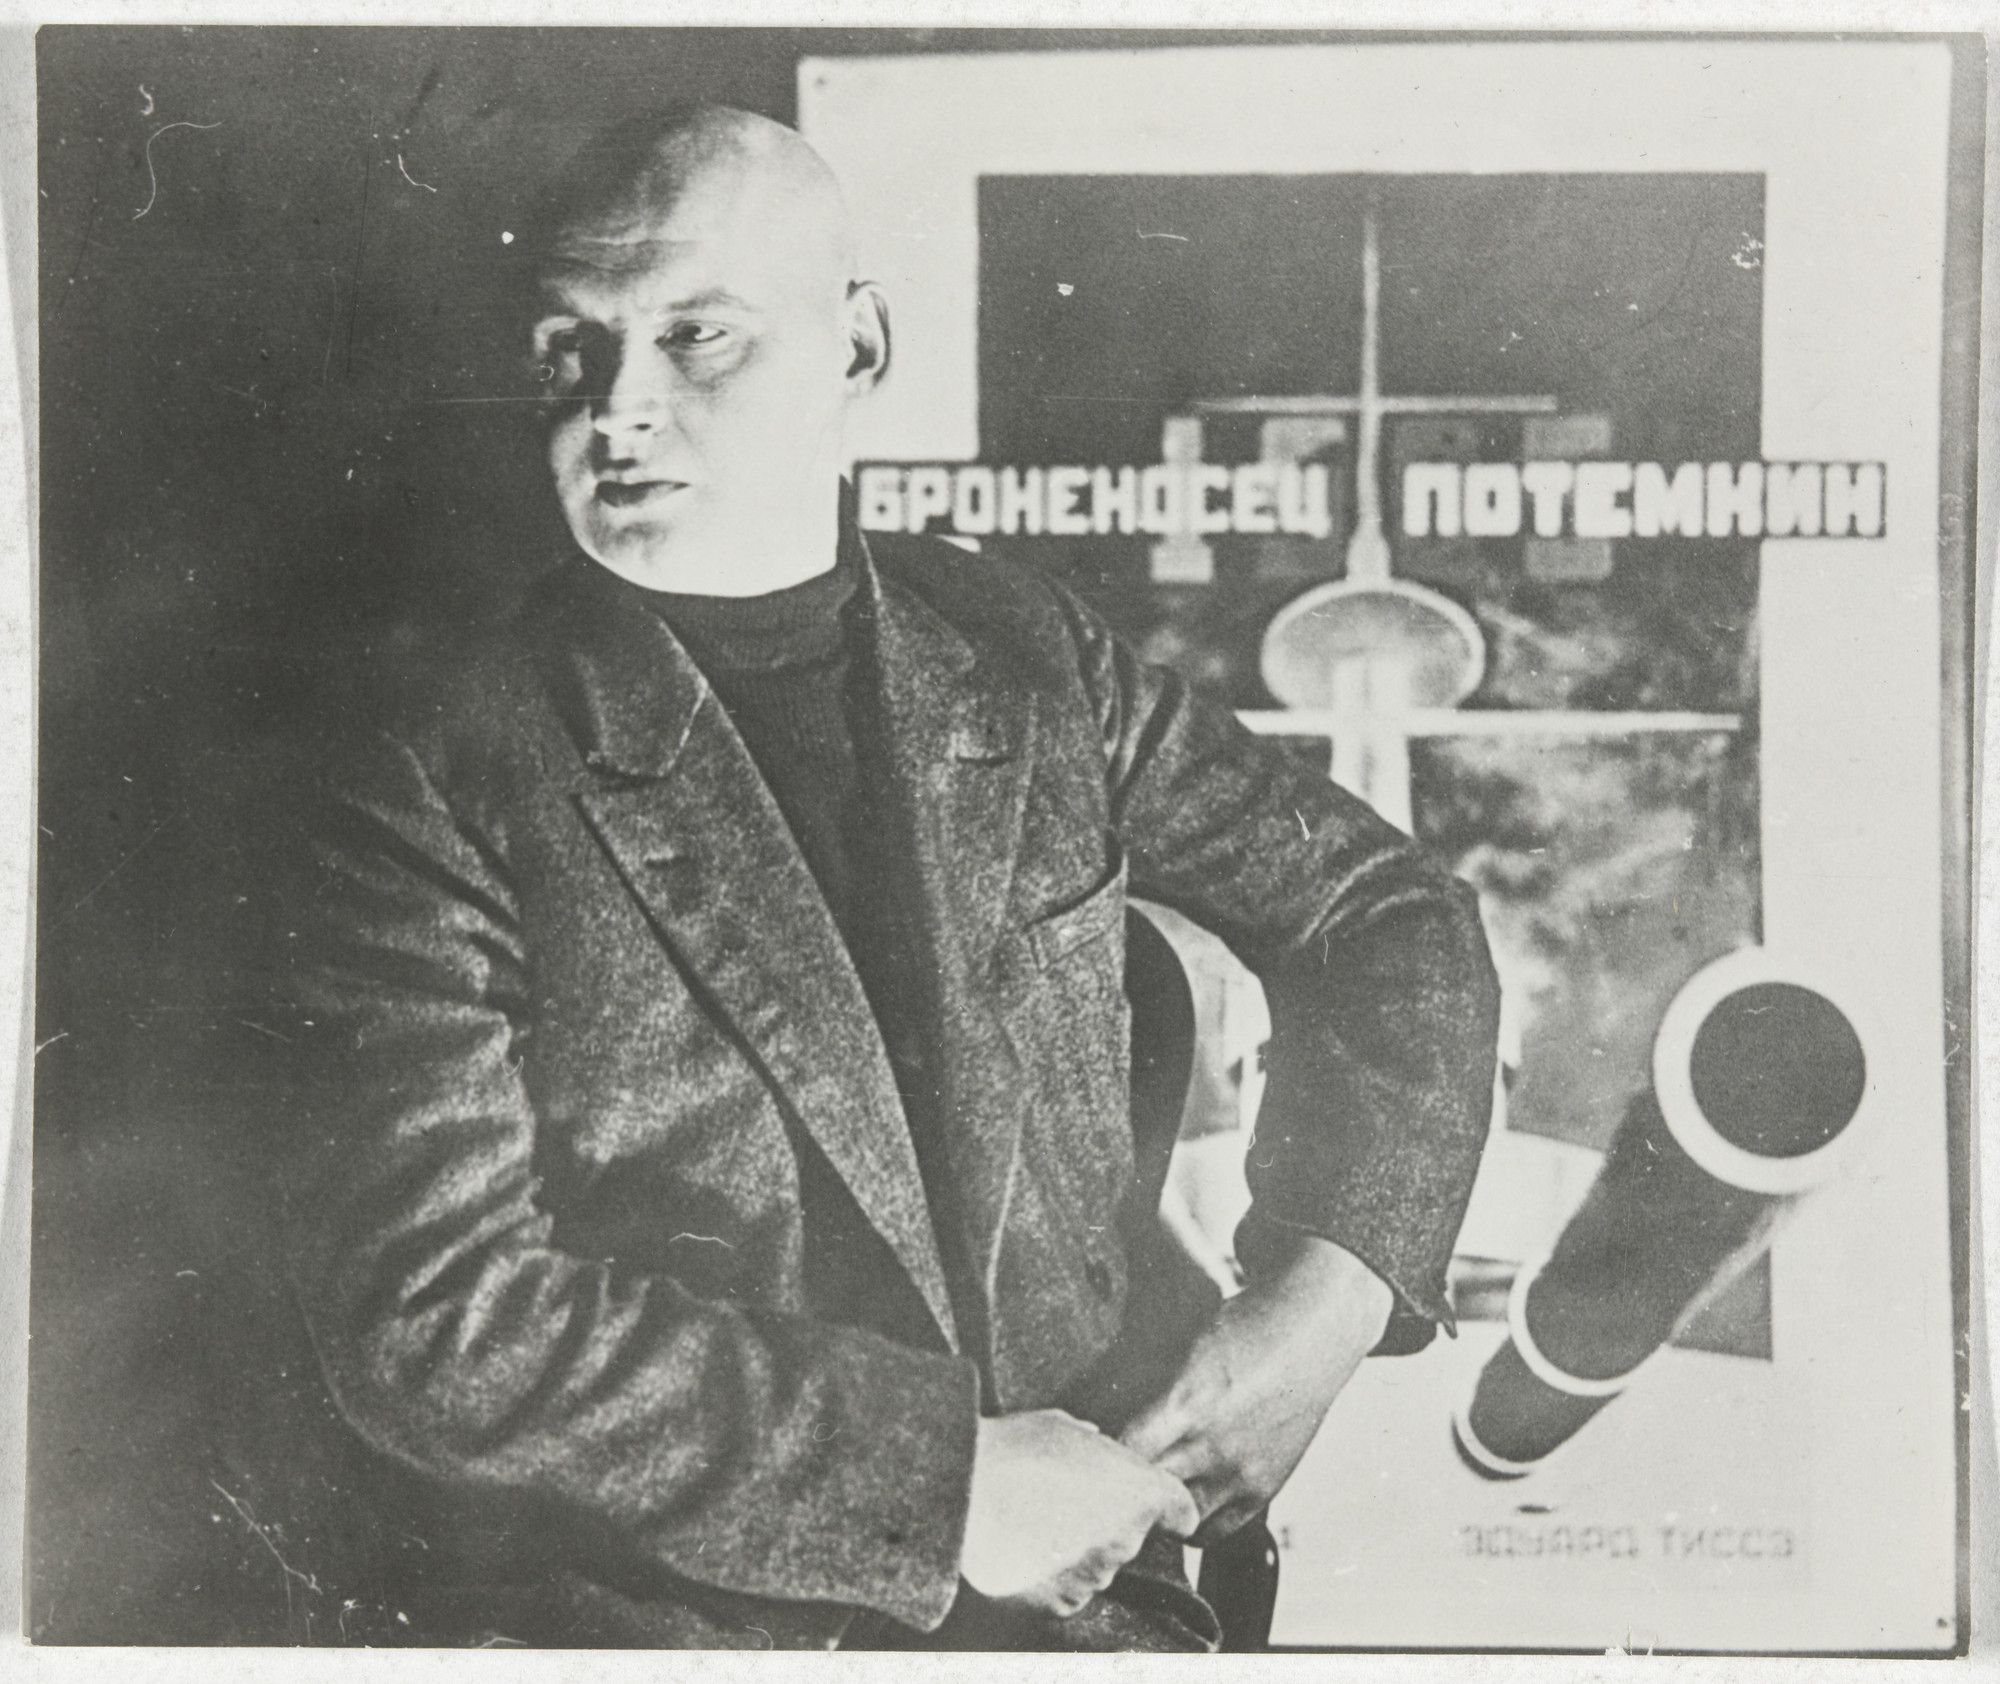 Aleksandr Rodchenko. Untitled (Self-portrait with poster for Battleship Potemkin). c. 1925